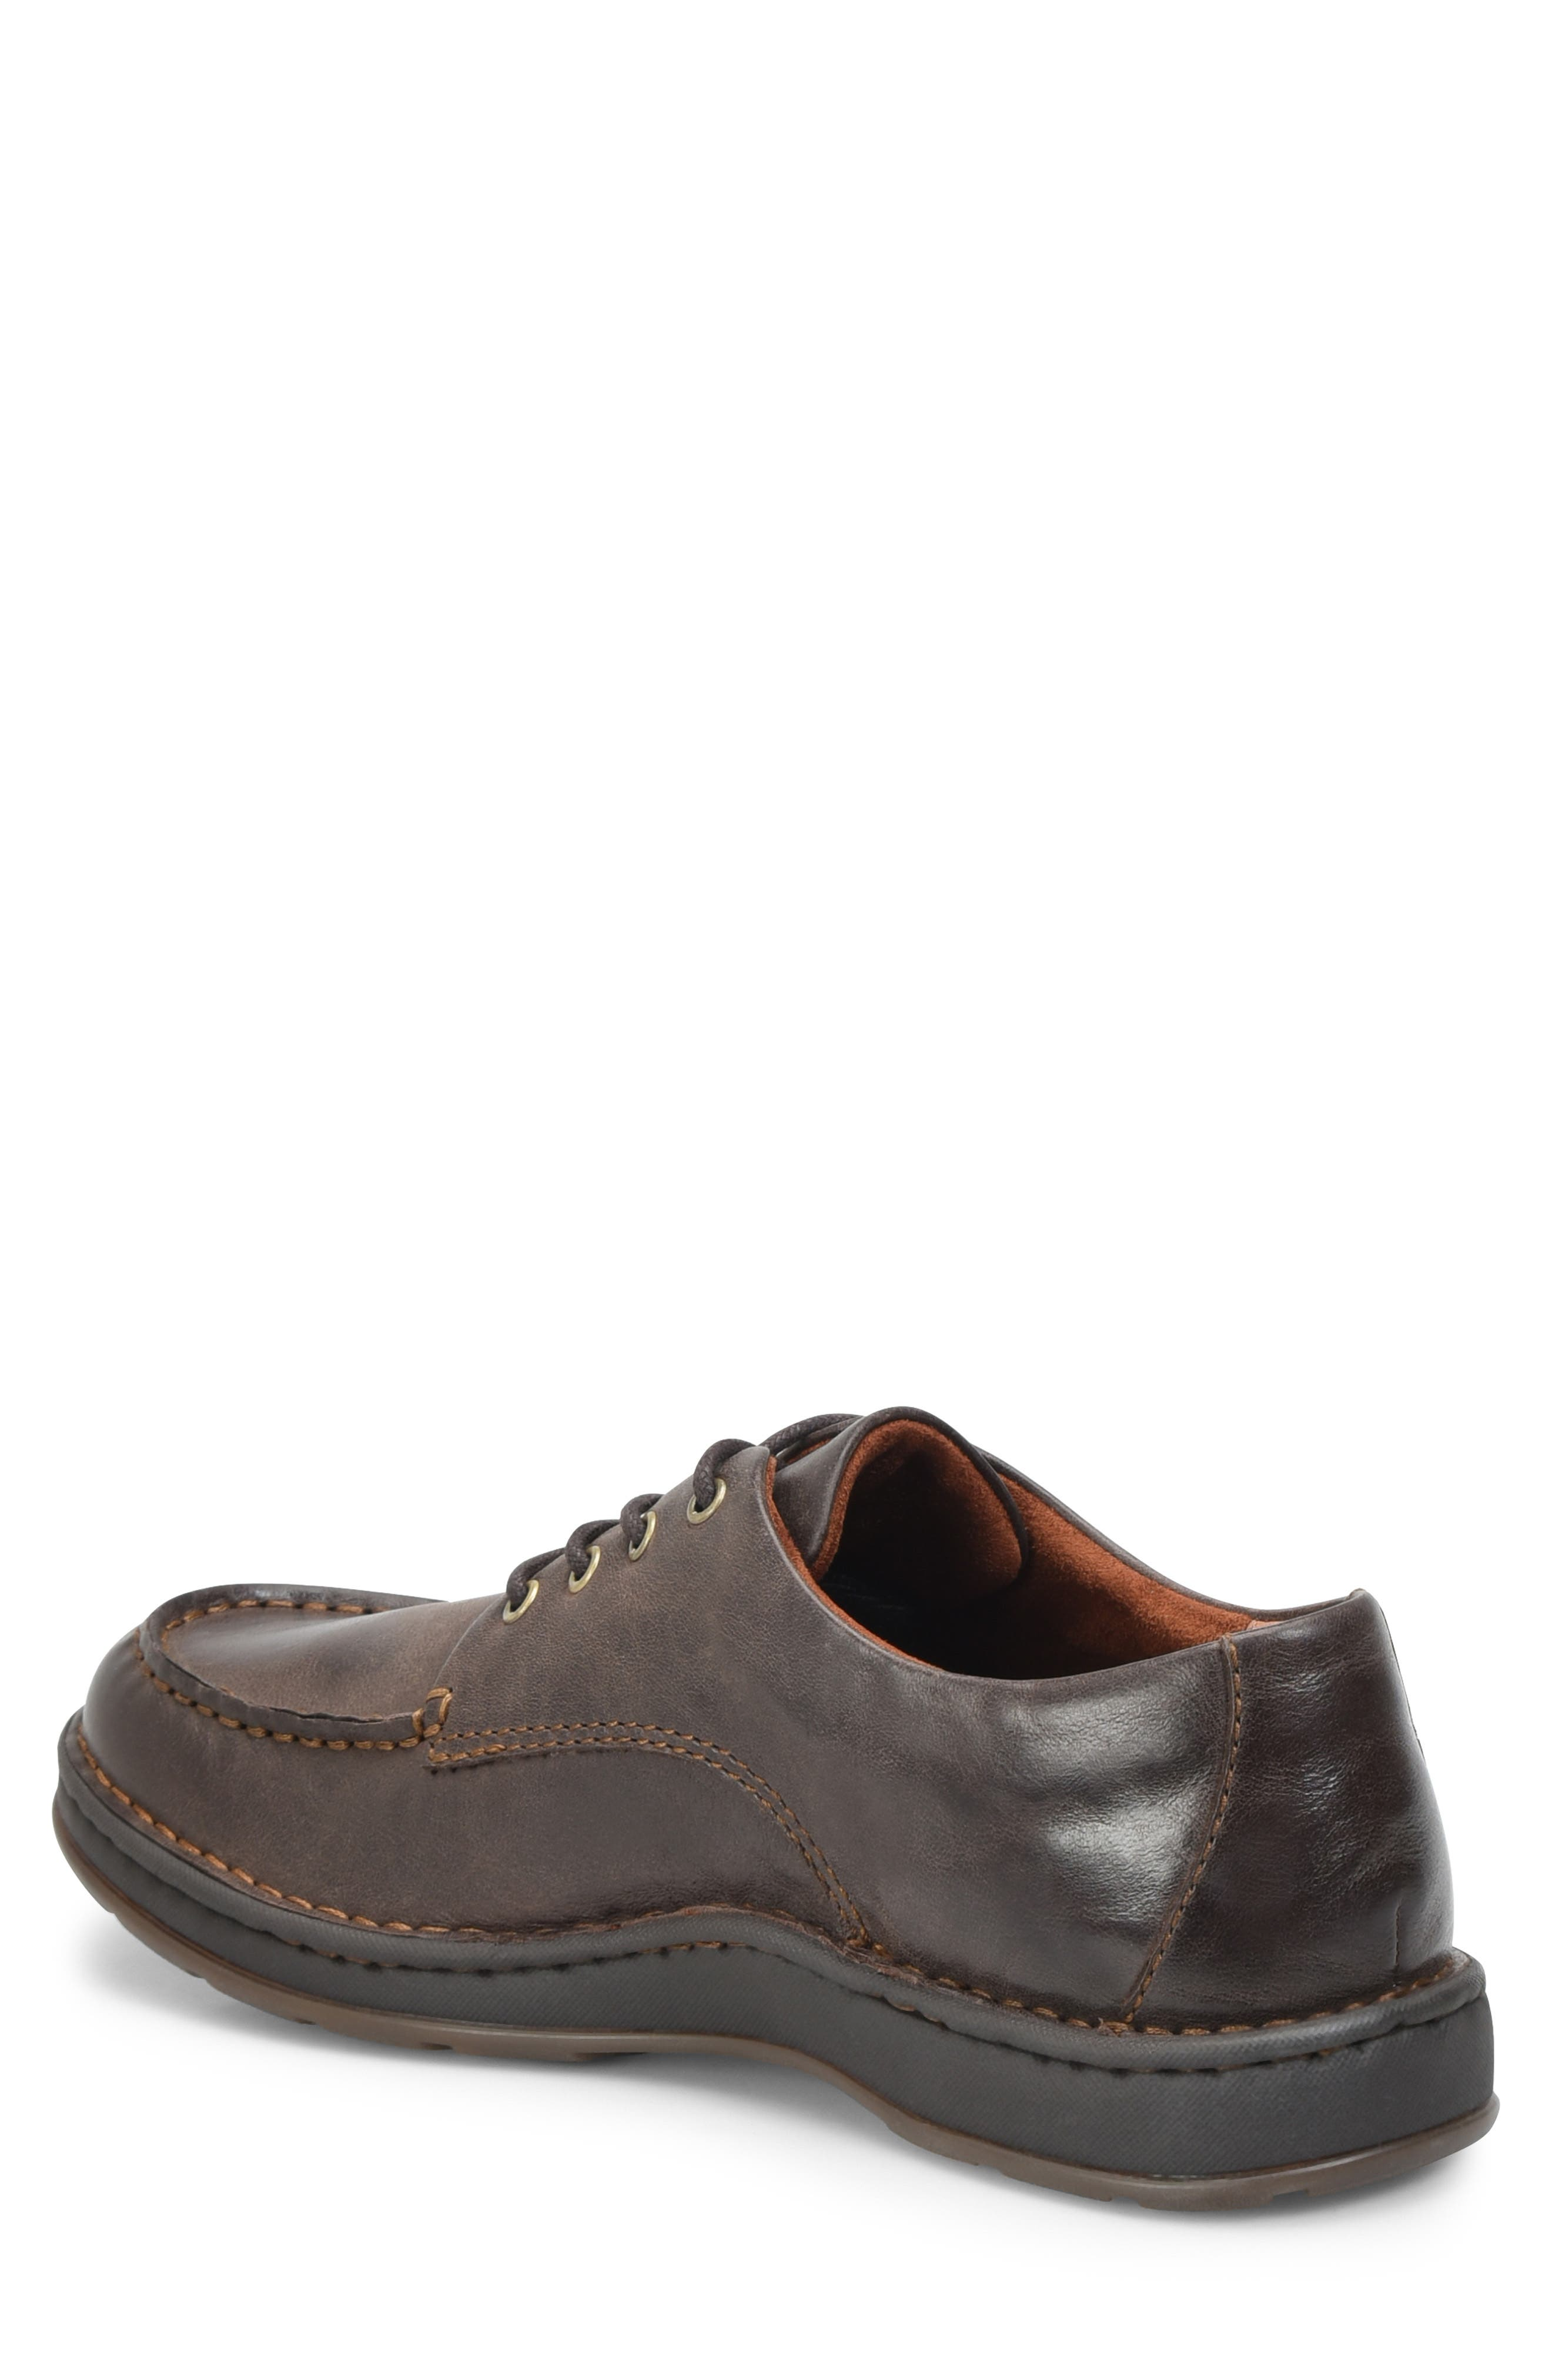 Leon Moc Toe Derby,                             Alternate thumbnail 2, color,                             DARK BROWN LEATHER